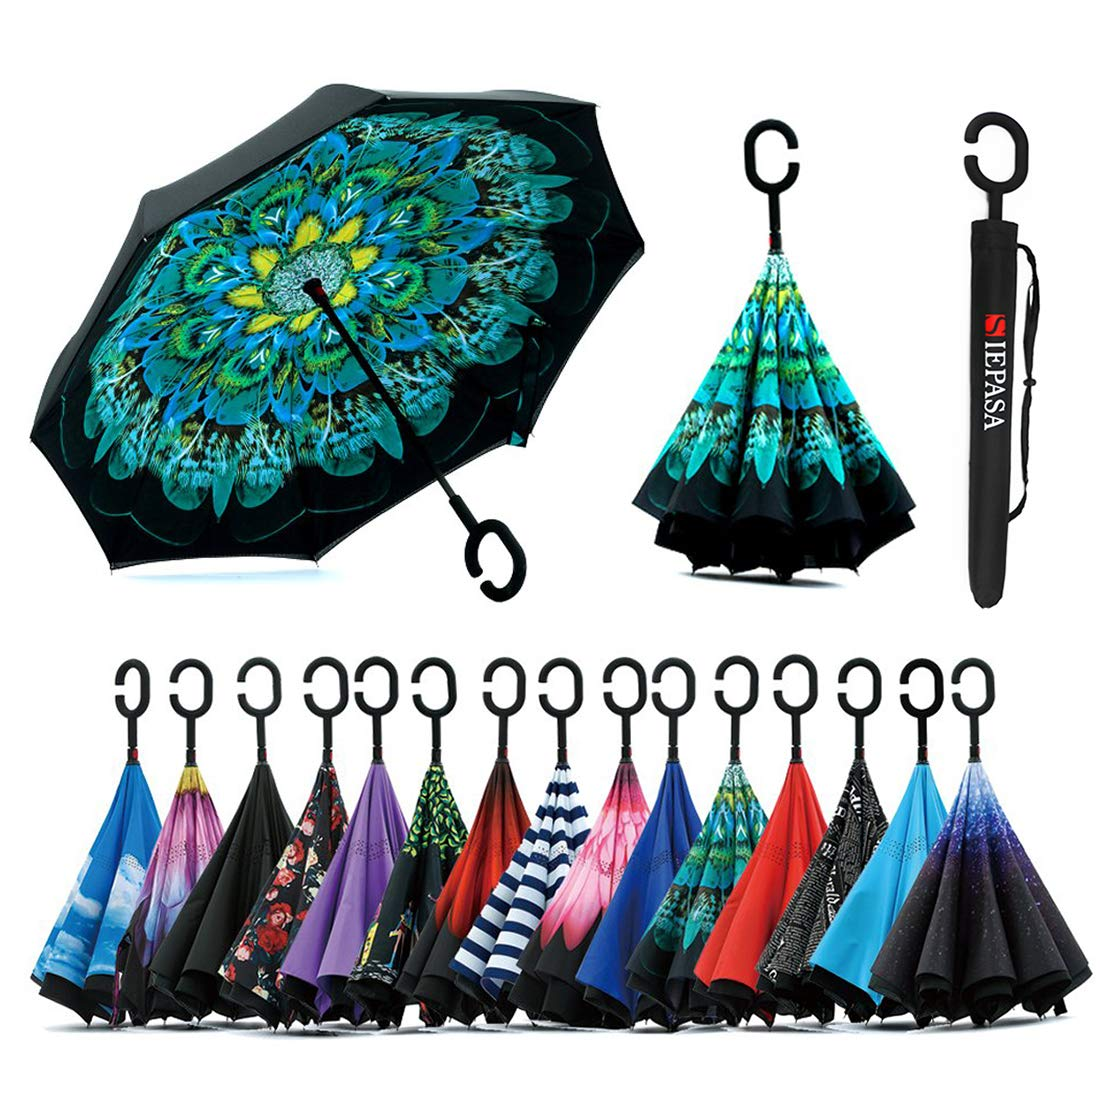 Inverted Umbrella C Shaped Waterproof Windproof